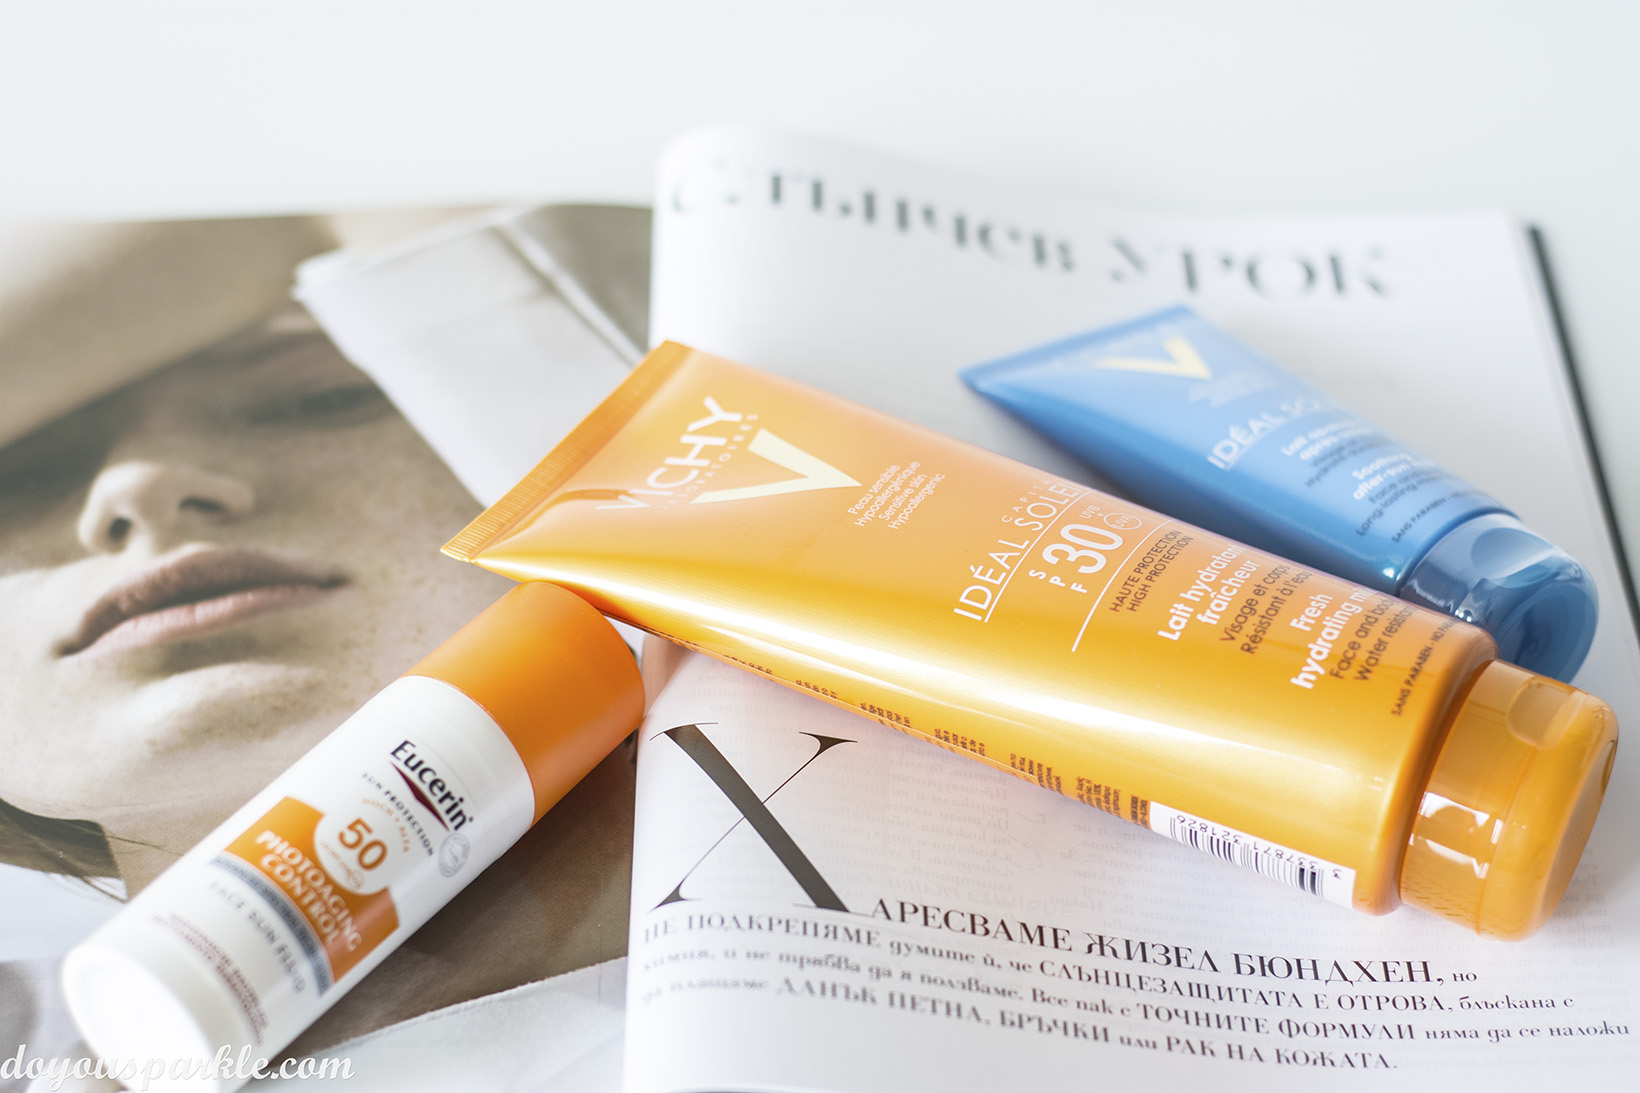 Face and sunscreen products